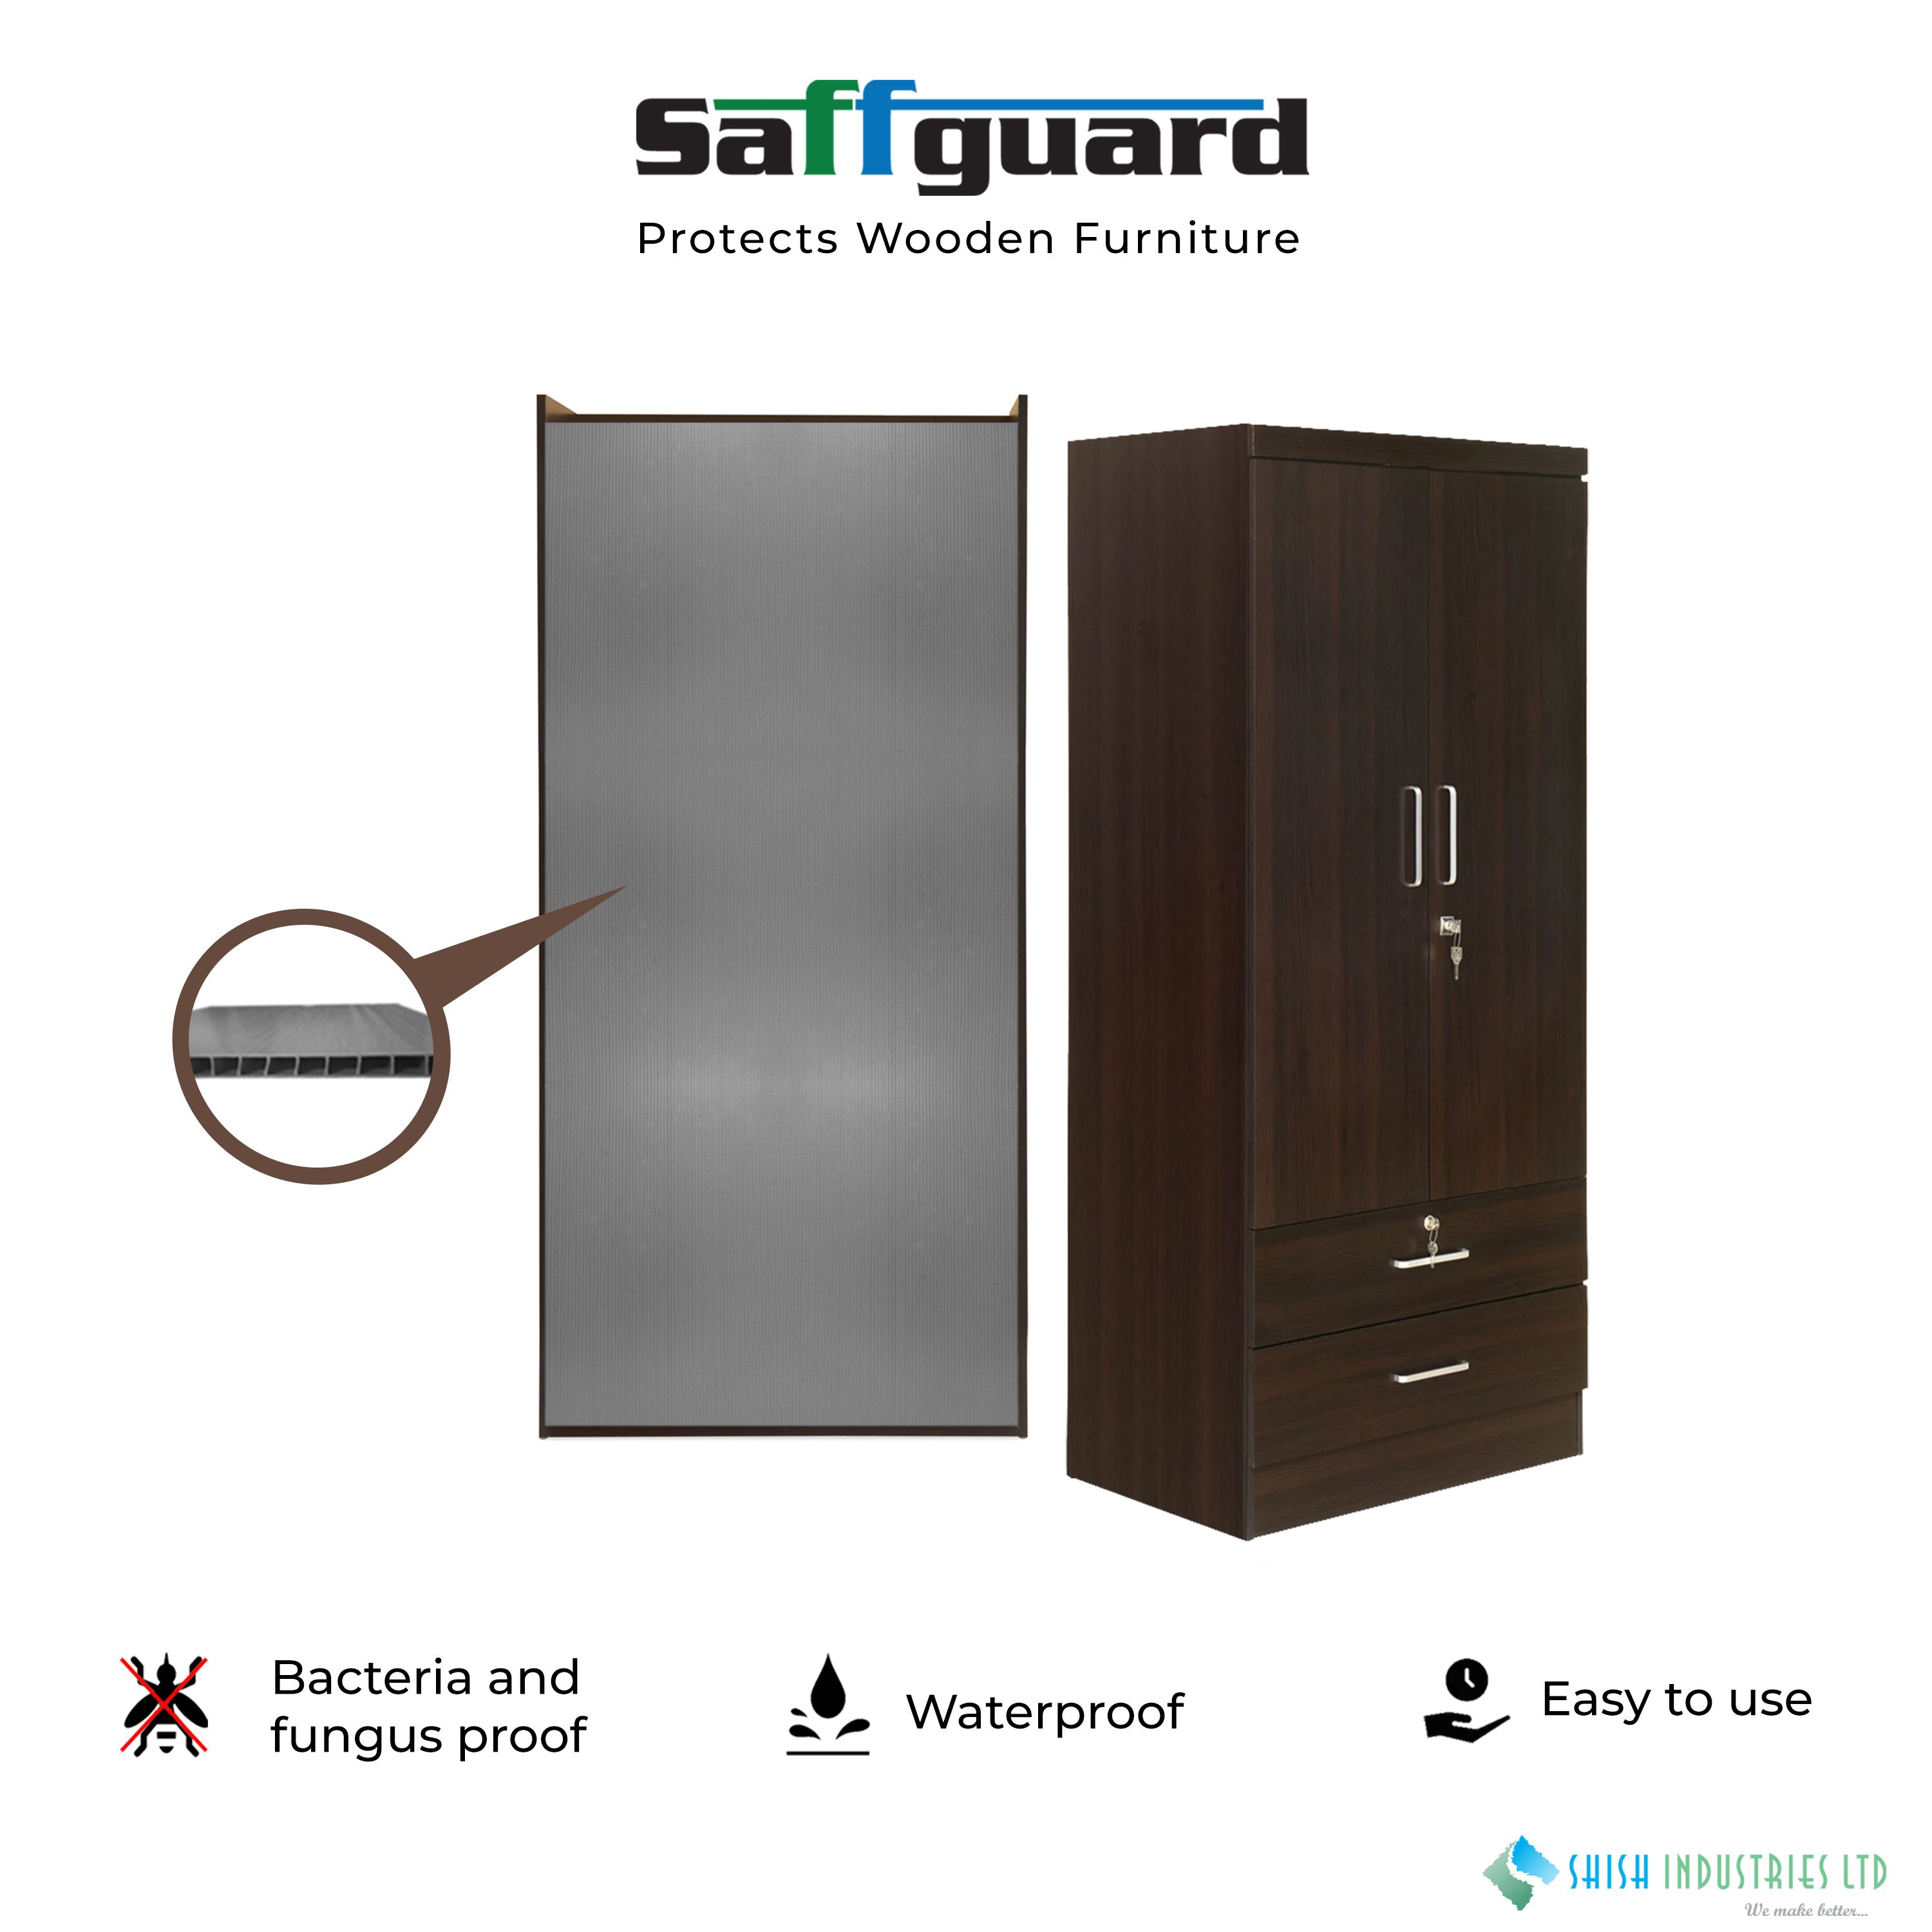 Saffguard Protects Wooden Your Furniture Furniture Tall Cabinet Storage Locker Storage